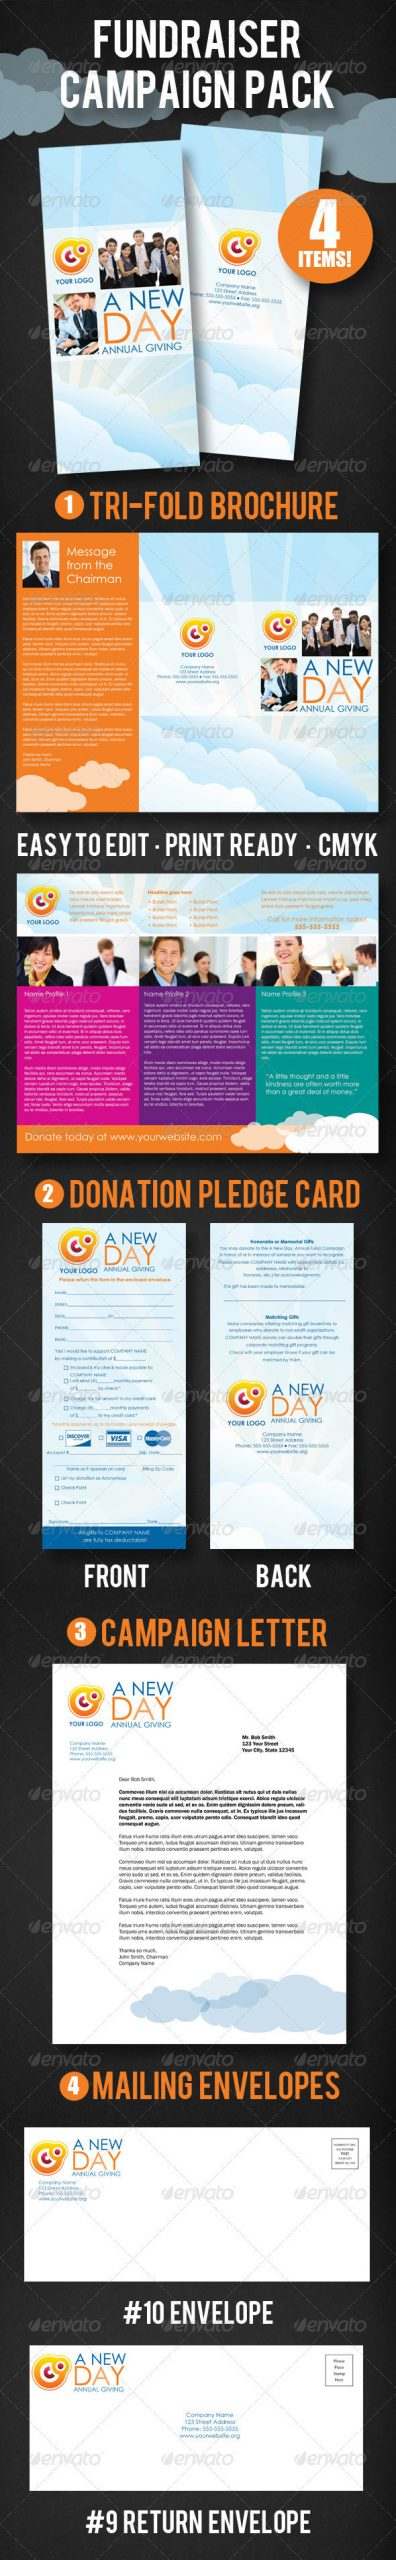 Free Pledge Card Template